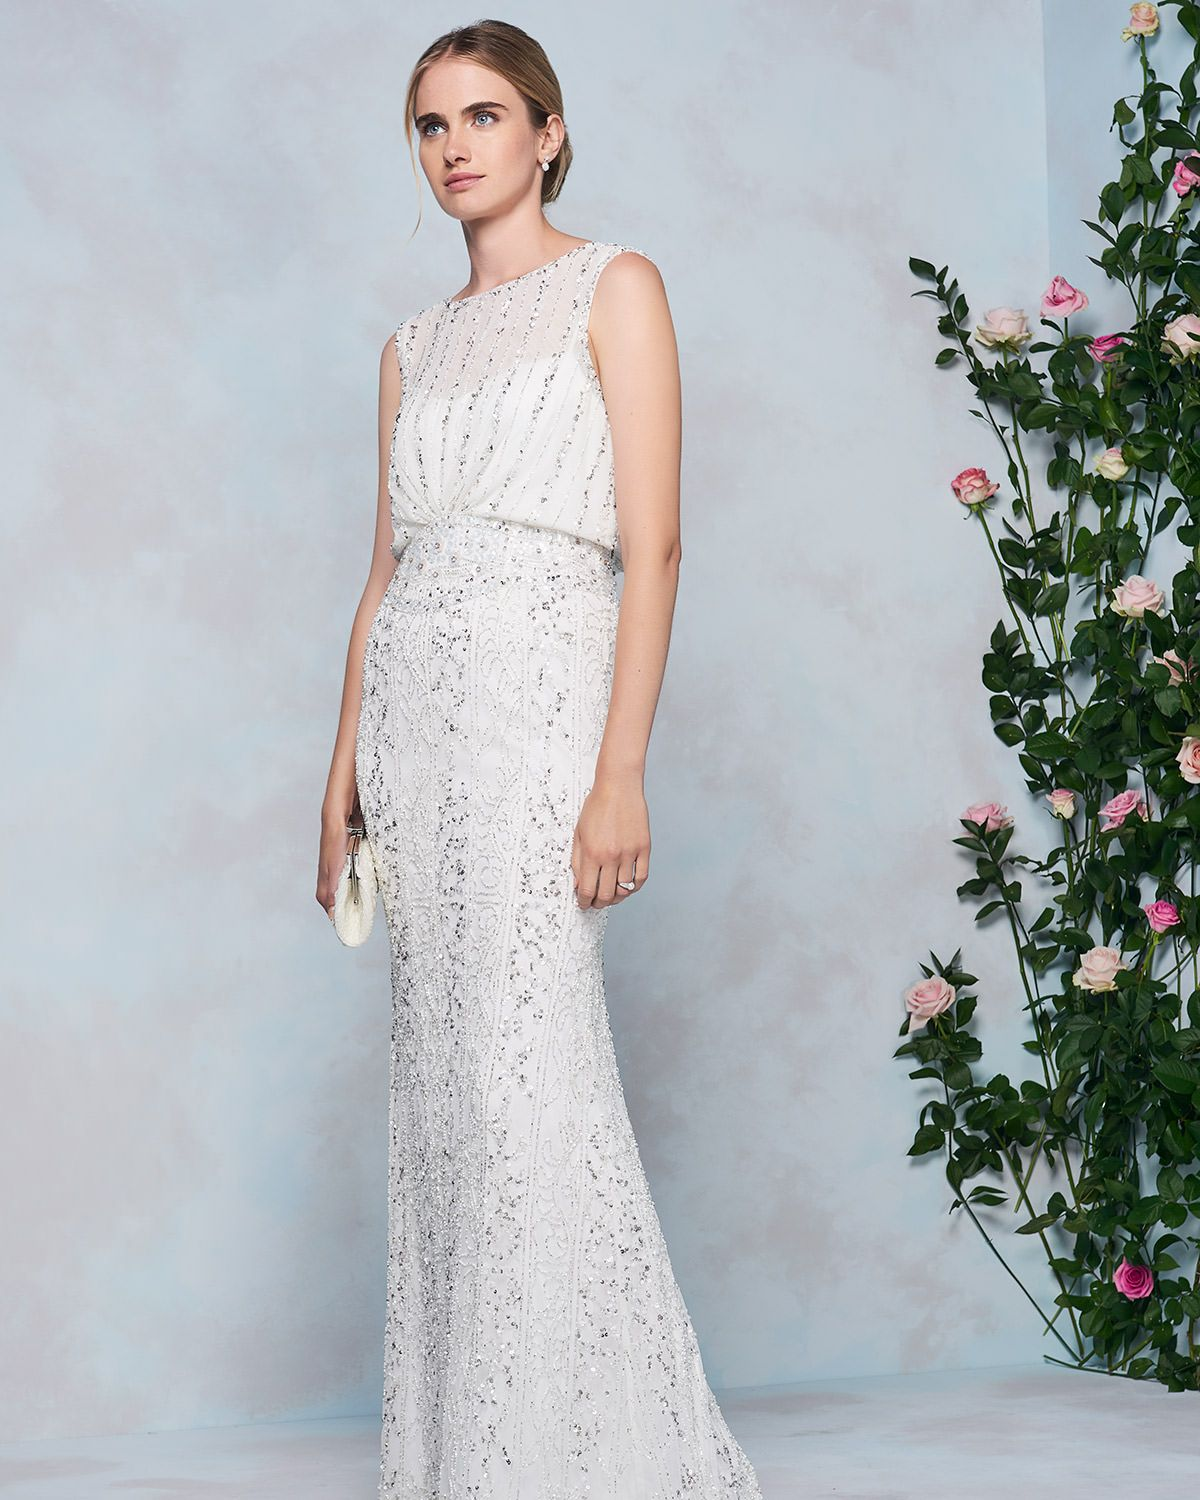 A 1920s inspired wedding dress heavily embellished with shimmering ...